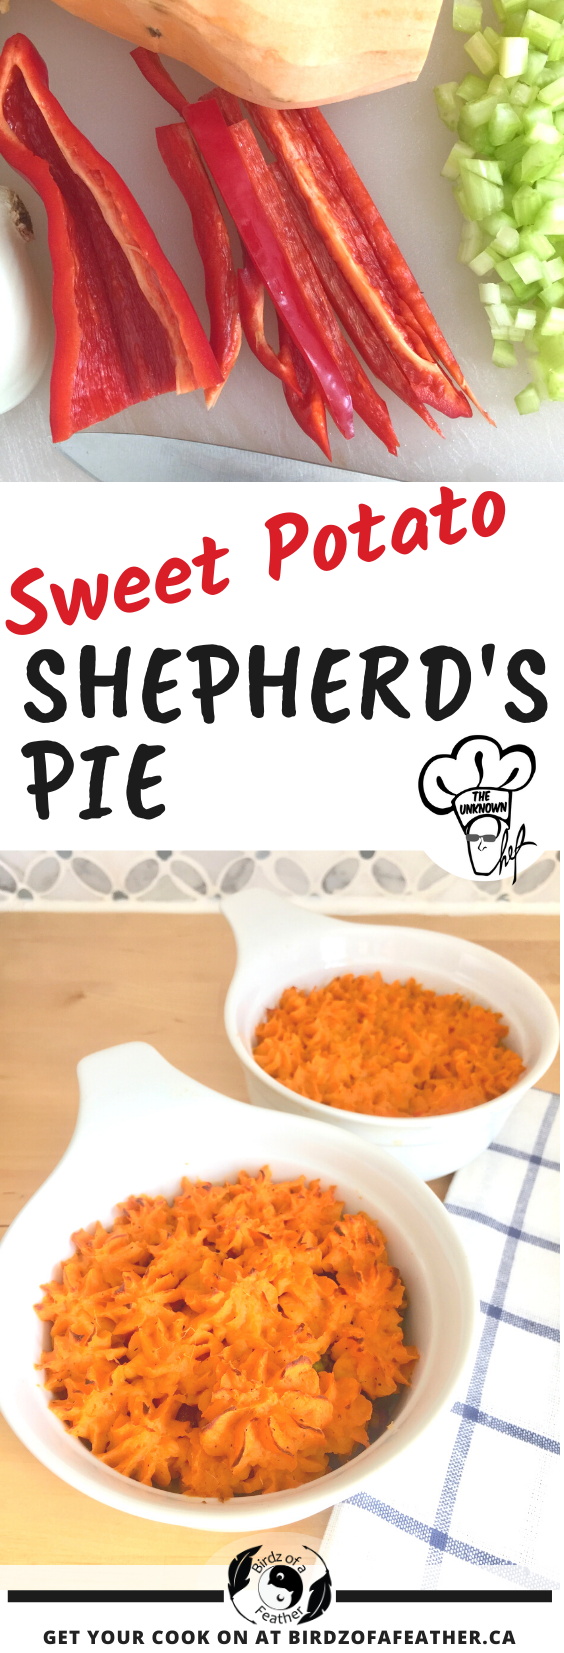 Sweet potato shepherd's pie is a tasty treat and a favourite make-ahead meal. Makes enough to eat some the same day and also freeze for later! Birdz of a Feather   sweet potato recipes   shepherd's pie   sweet potato shepard's pie   sweet potato shepard's pie healthy   make ahead meals   make ahead dinners   make ahead masked potatoes   tasty dinner recipes   tasty dinner ideas   tasty dinner for two   meat recipes   meat recipes for dinner   meat recipes healthy